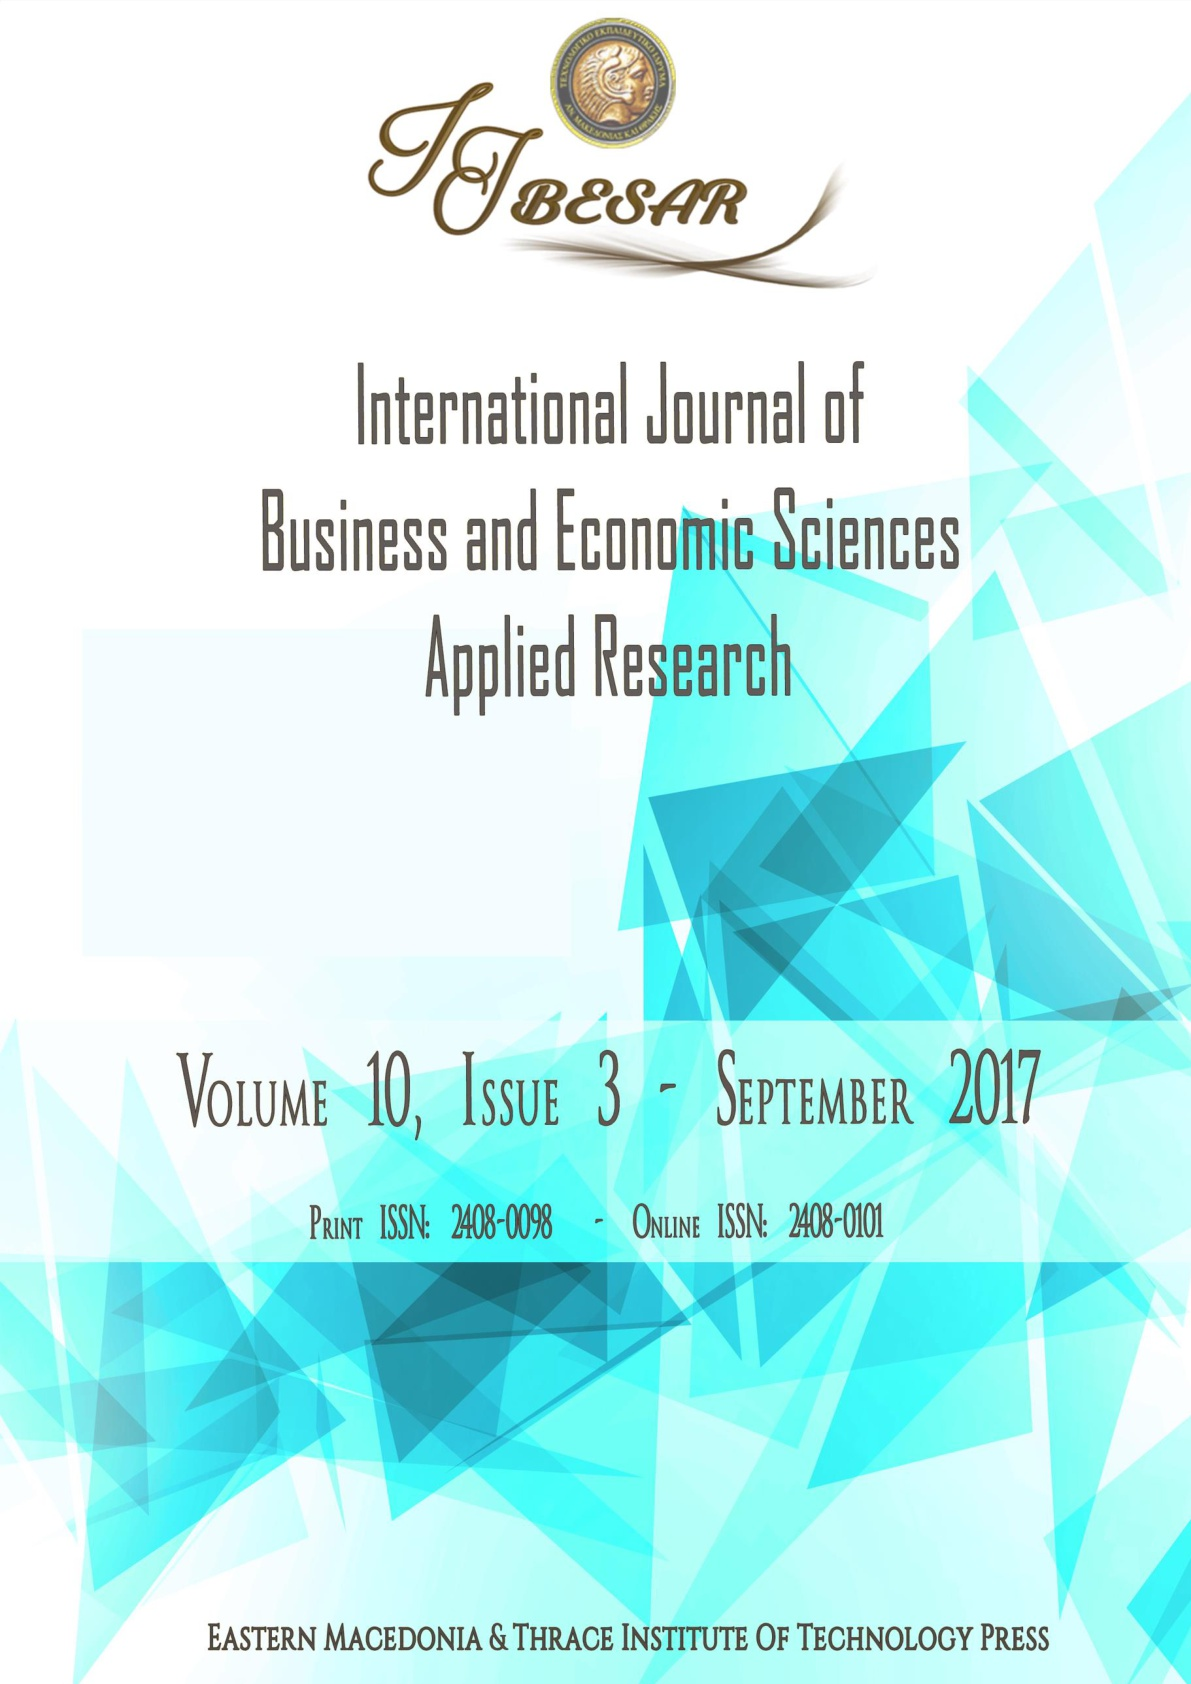 international journal of business and social International journal of academic research and development is peer-reviewed, indexed and refereed journal and is designed to publish research articles in language, literature, science, social sciences and humanities.